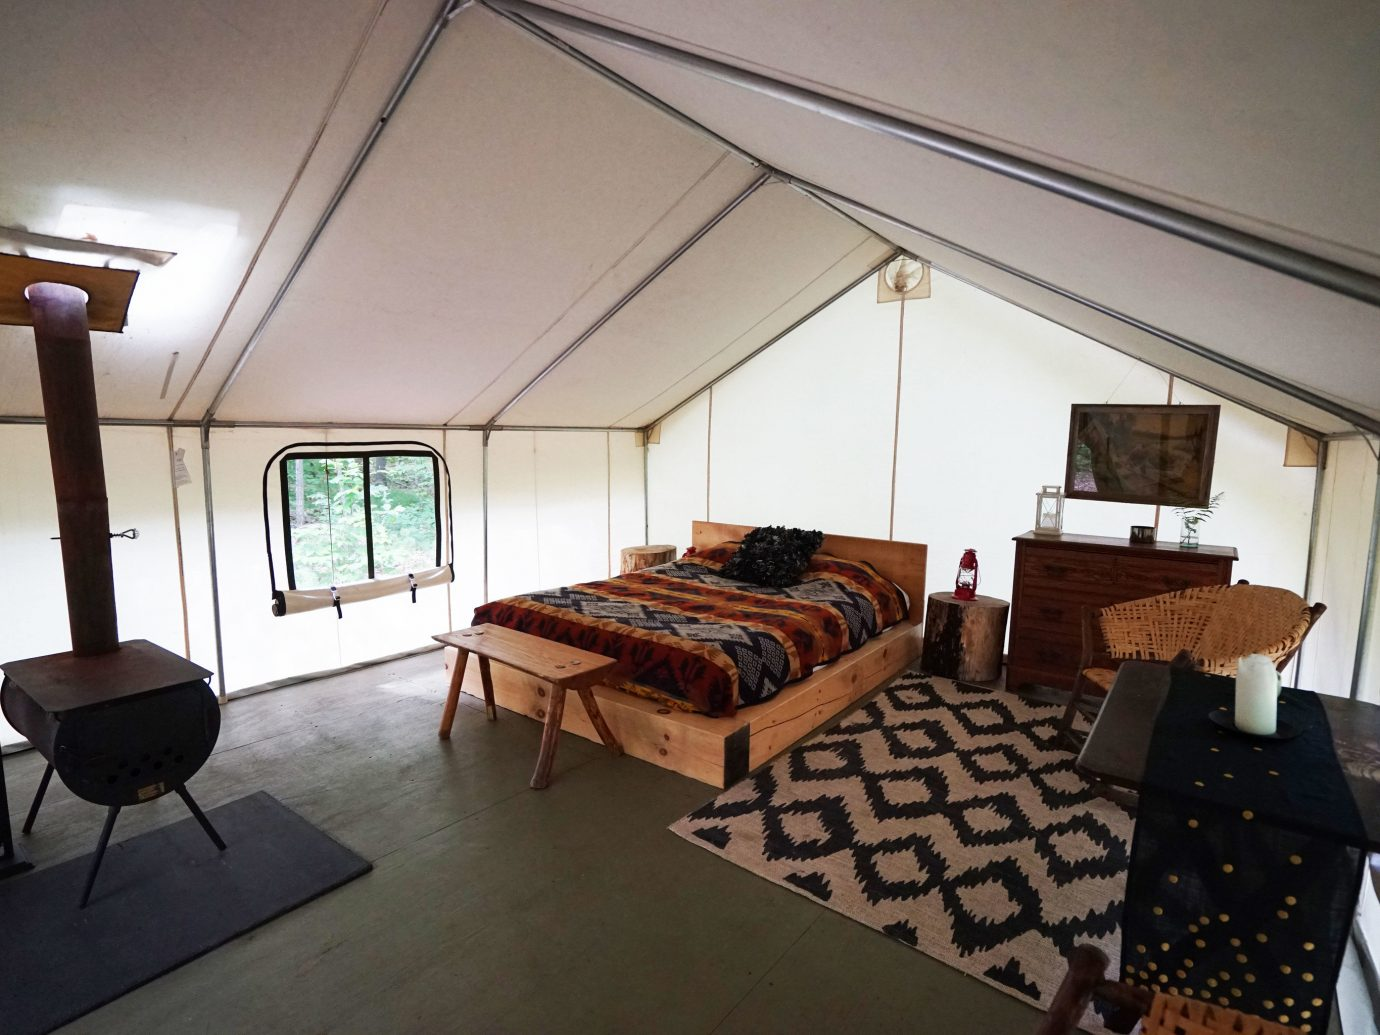 Glamping Luxury Travel Outdoors + Adventure Weekend Getaways indoor floor wall room Living property ceiling building house estate Villa living room cottage home furniture real estate interior design Suite Design apartment condominium area several